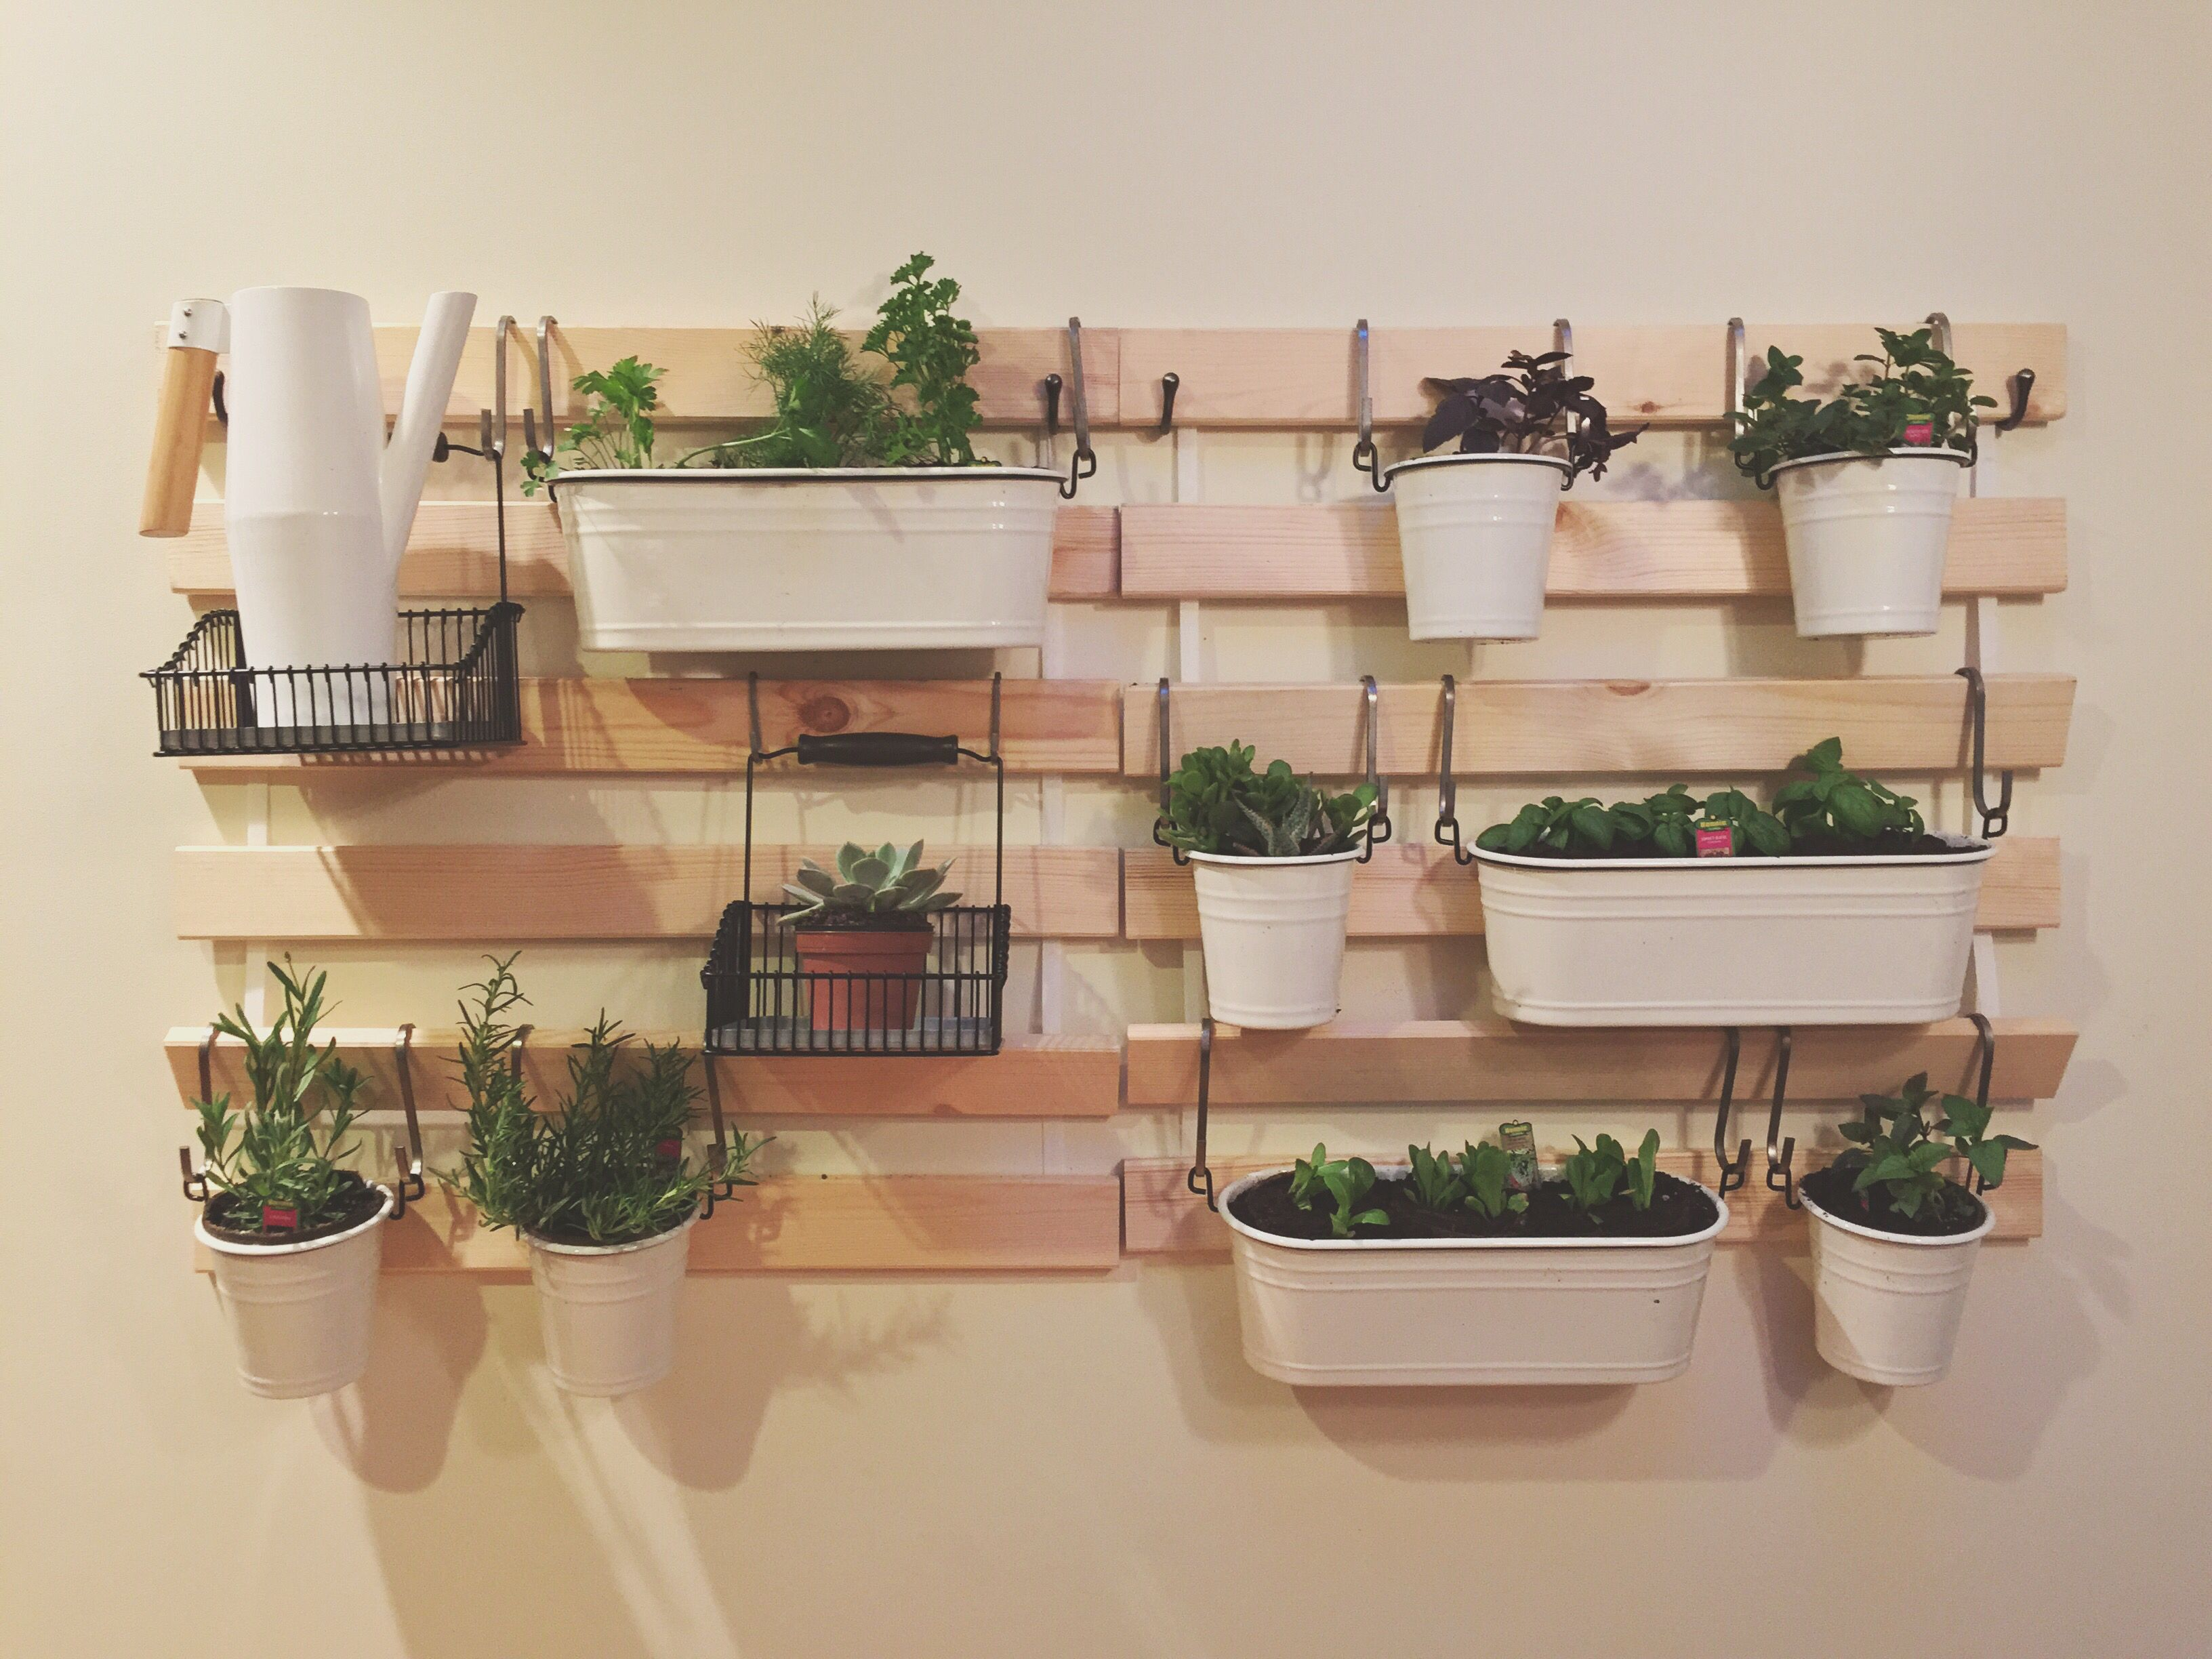 DIY IKEA living wall hack! Use the Sultan bed planks from Ikea